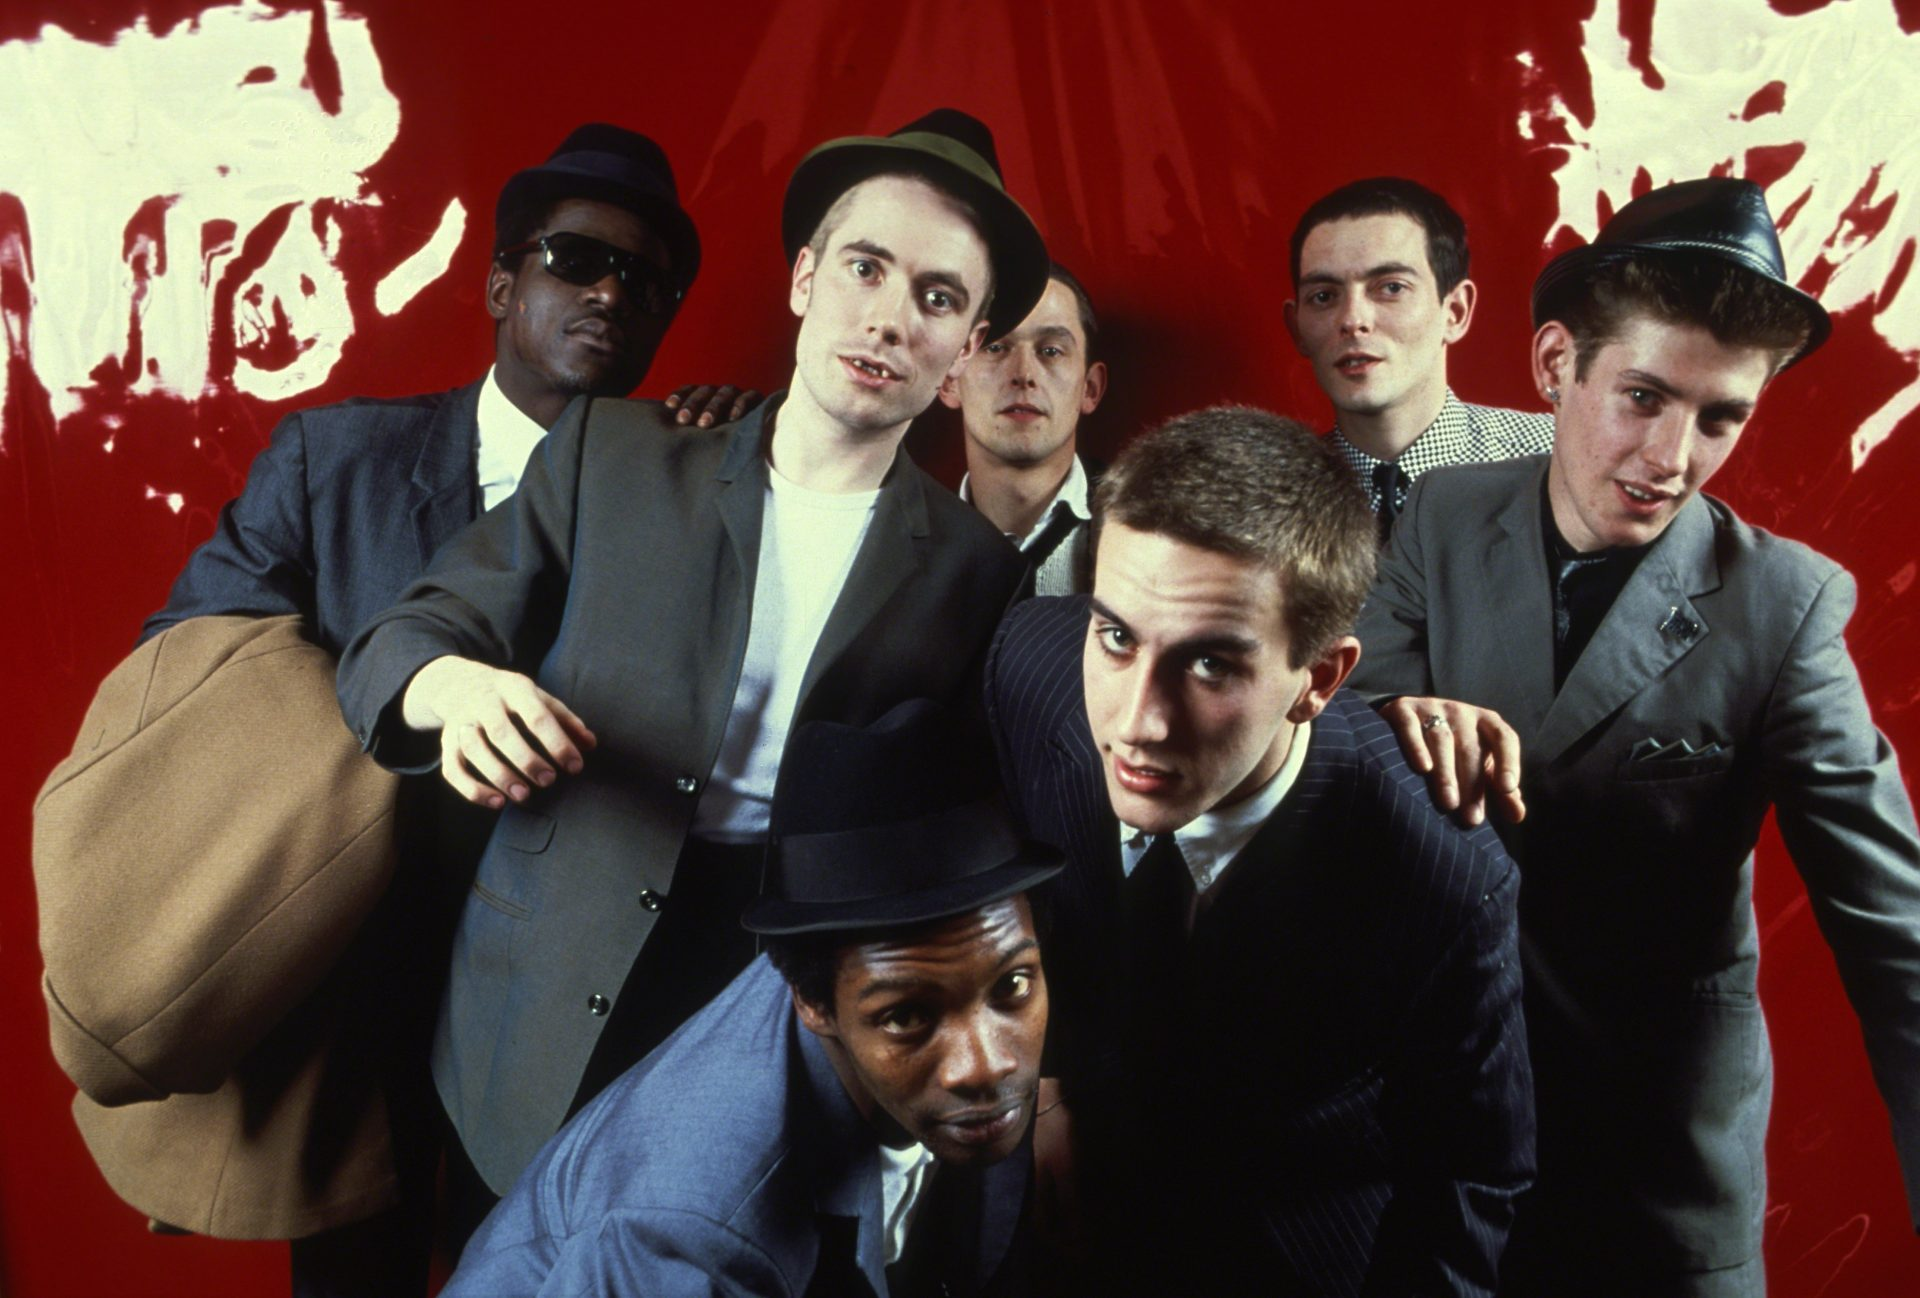 The Specials in New York City, 1980. Panter, centre back, Golding and Hall, centre front. Credit: Allan Tannenbaum